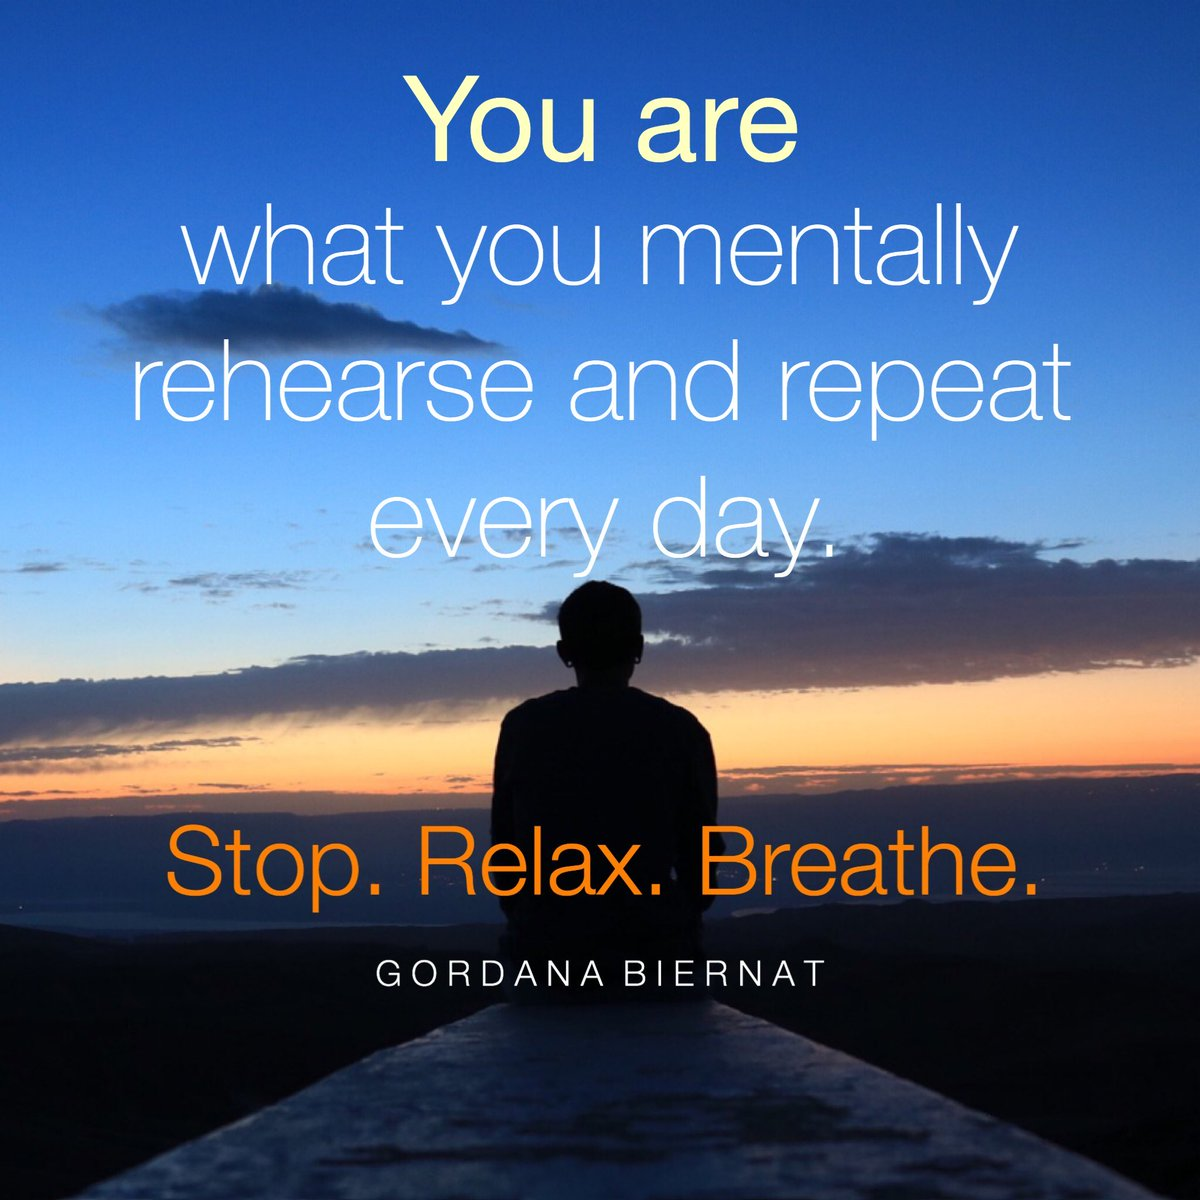 You are what you mentally rehearse and repeat every day.  Stop. Relax. Breathe.  Give yourself time to think and space - to just be.  #Love #ShineOn #FridayFeeling<br>http://pic.twitter.com/Bq7VPytpWo